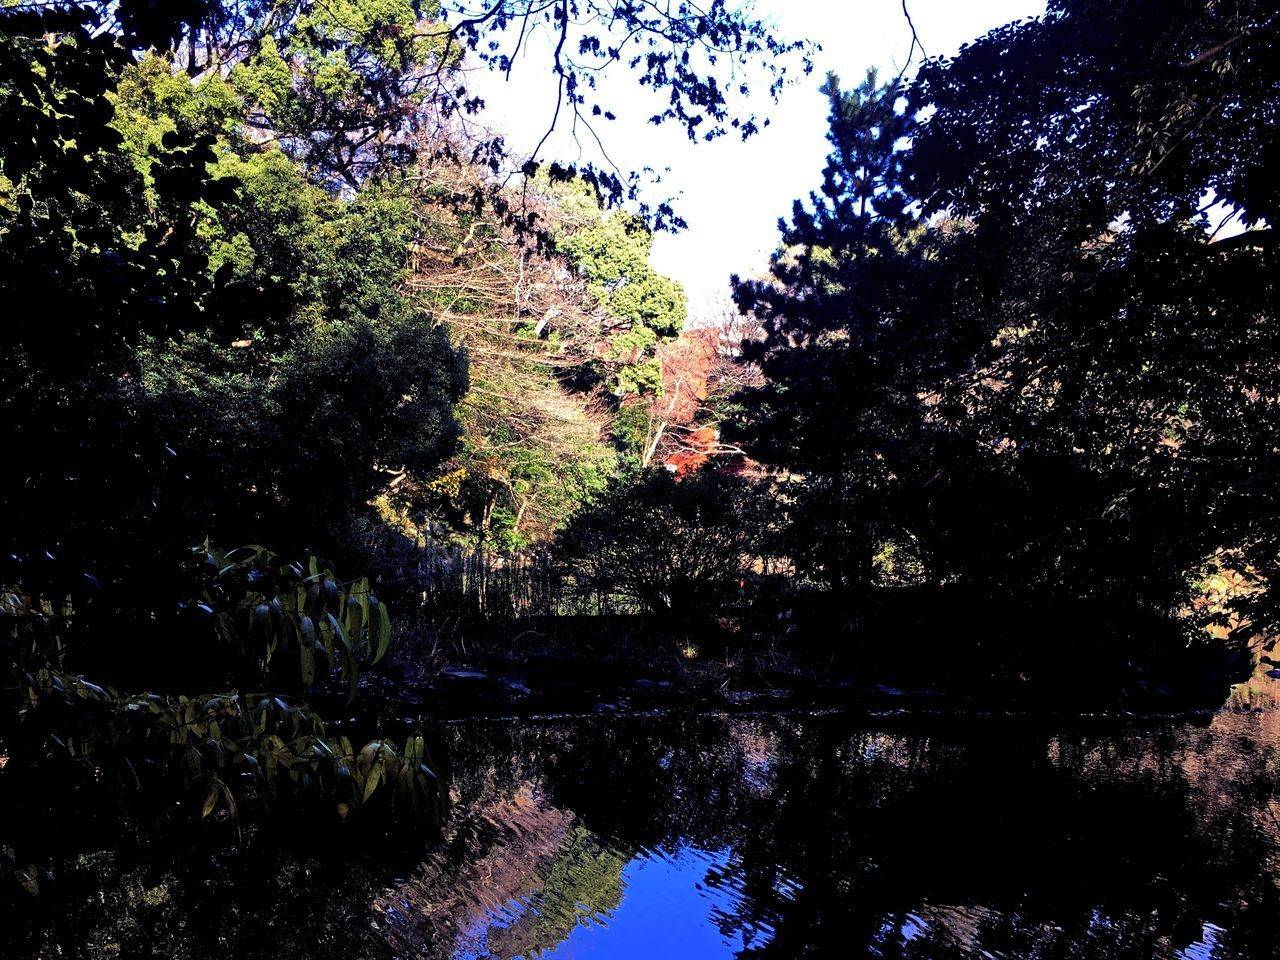 #hongo3tyoume #Tokyo Beauty In Nature Forest Nature No People Outdoors Sky Tree Water